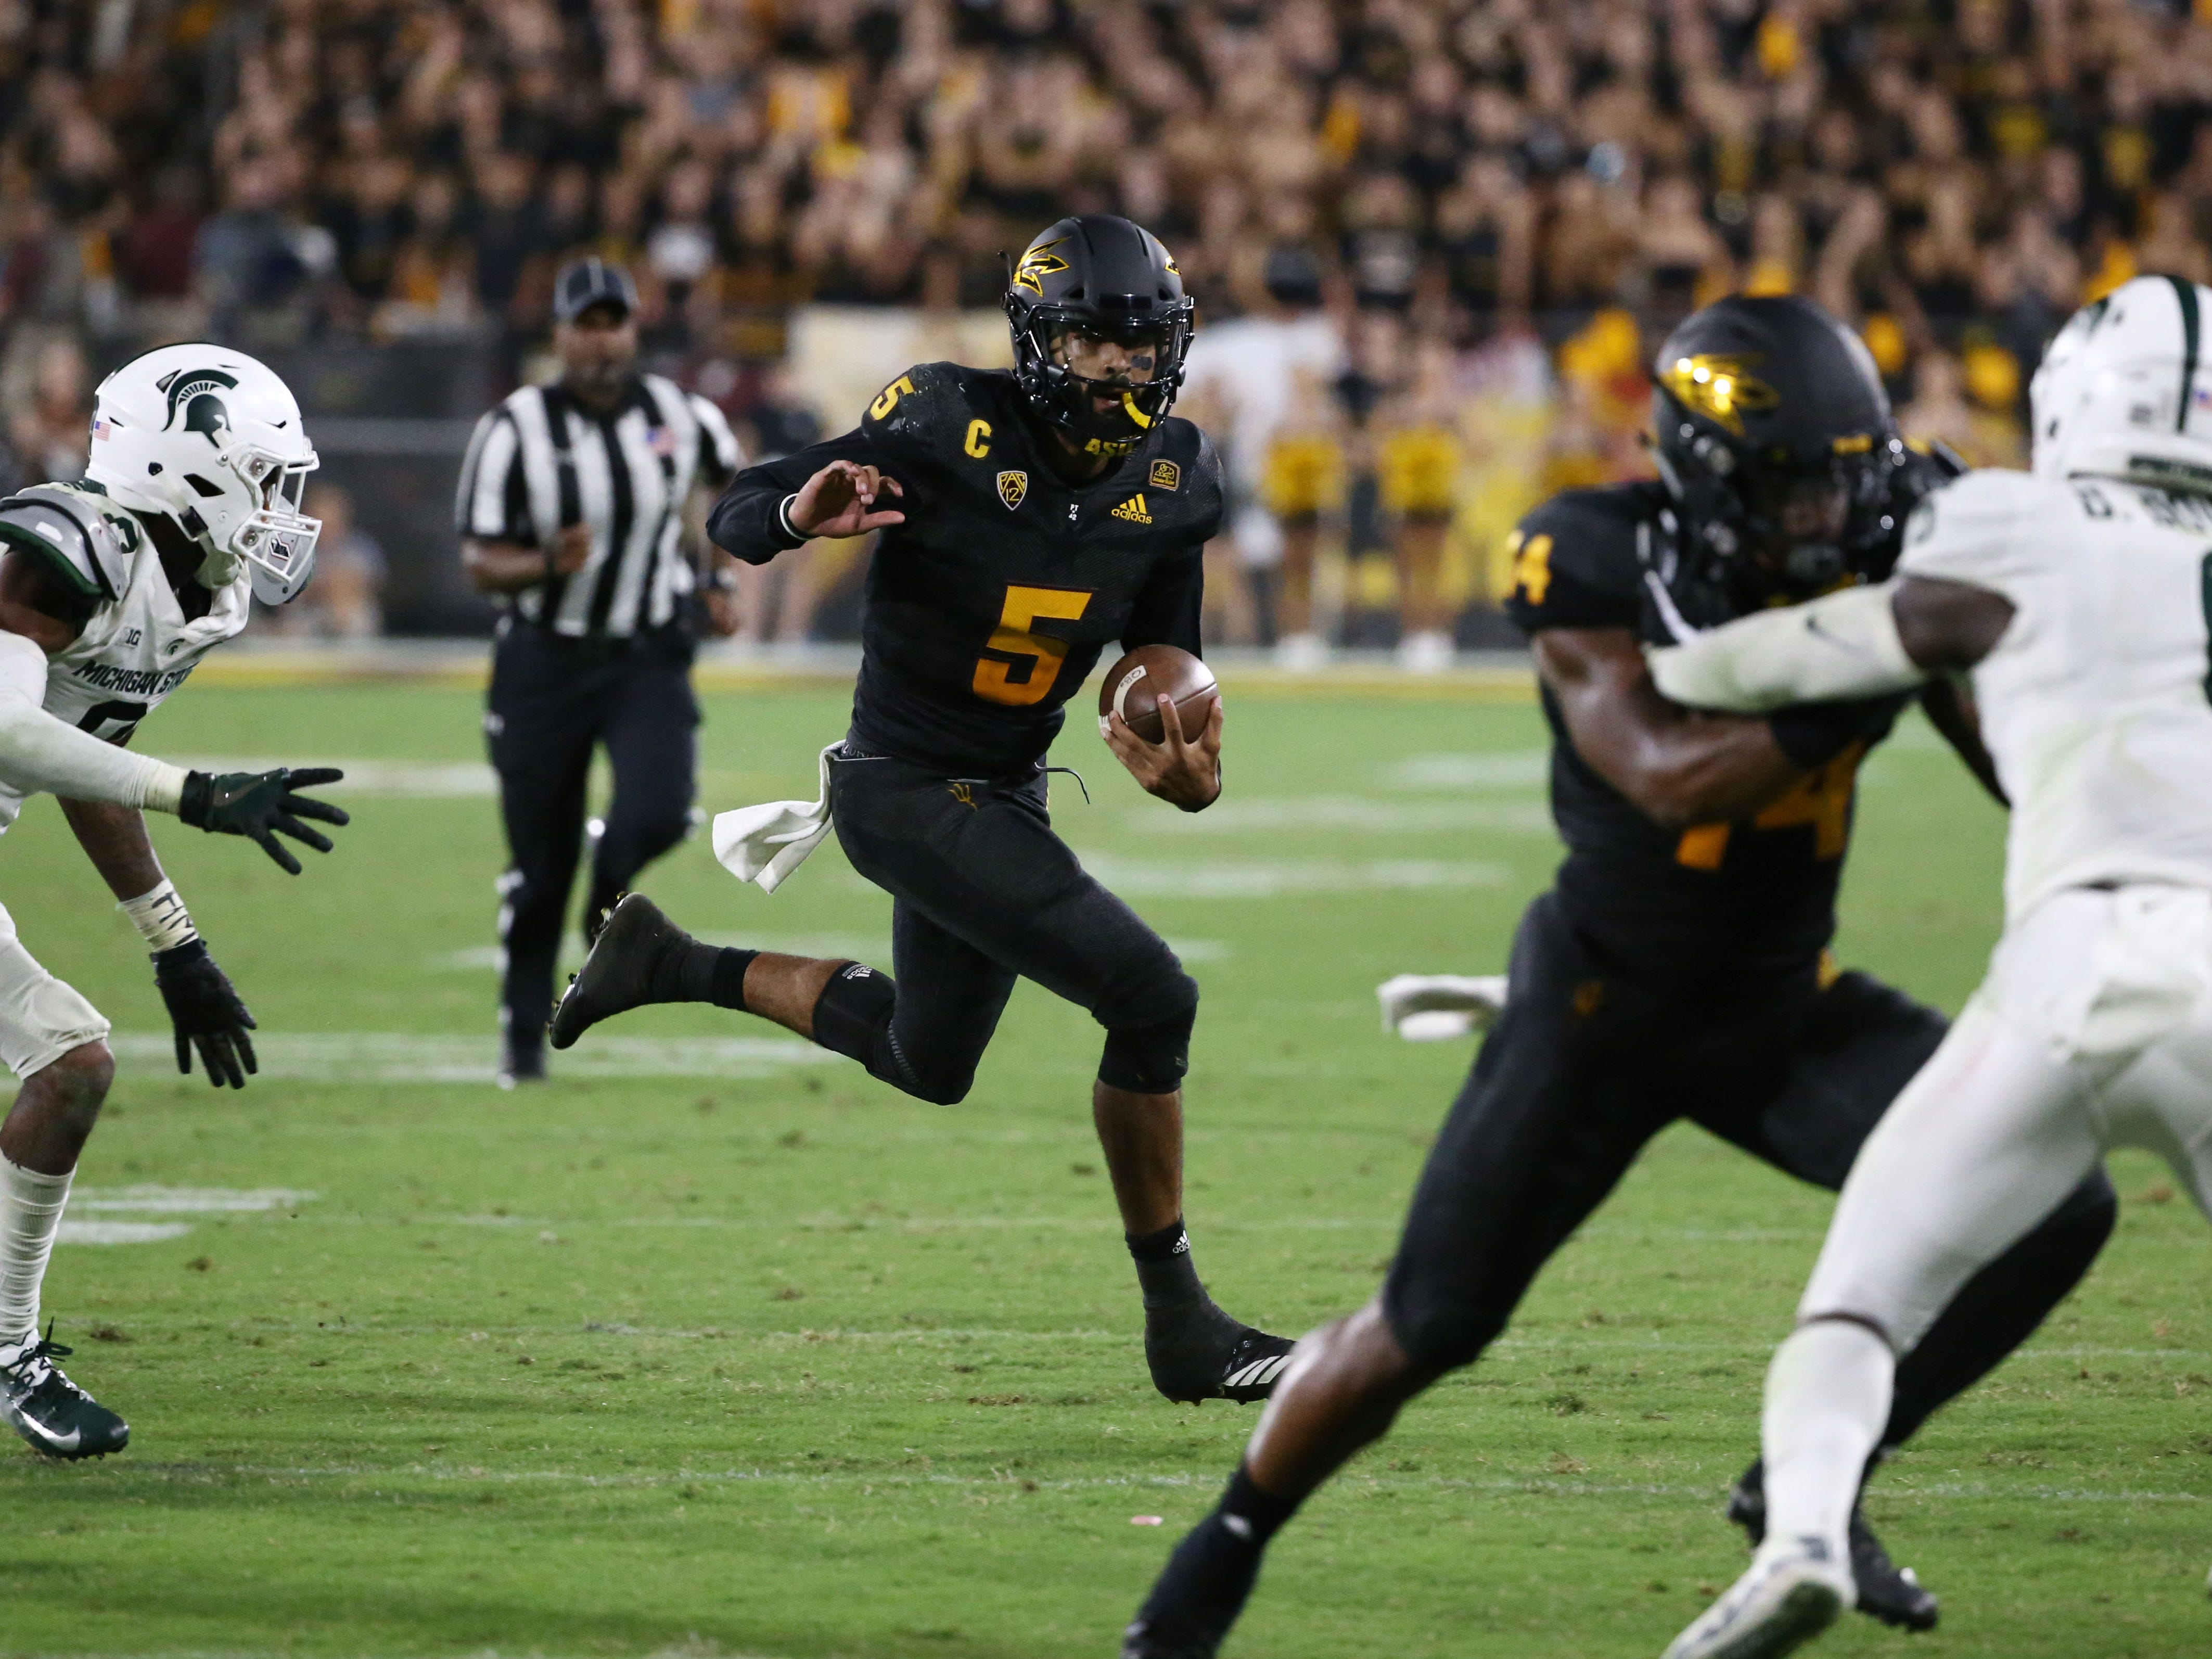 Arizona State quarterback Manny Wilkins runs out of the pocket against Michigan State in the second half on Sep. 8, 2018, at Sun Devil Stadium.